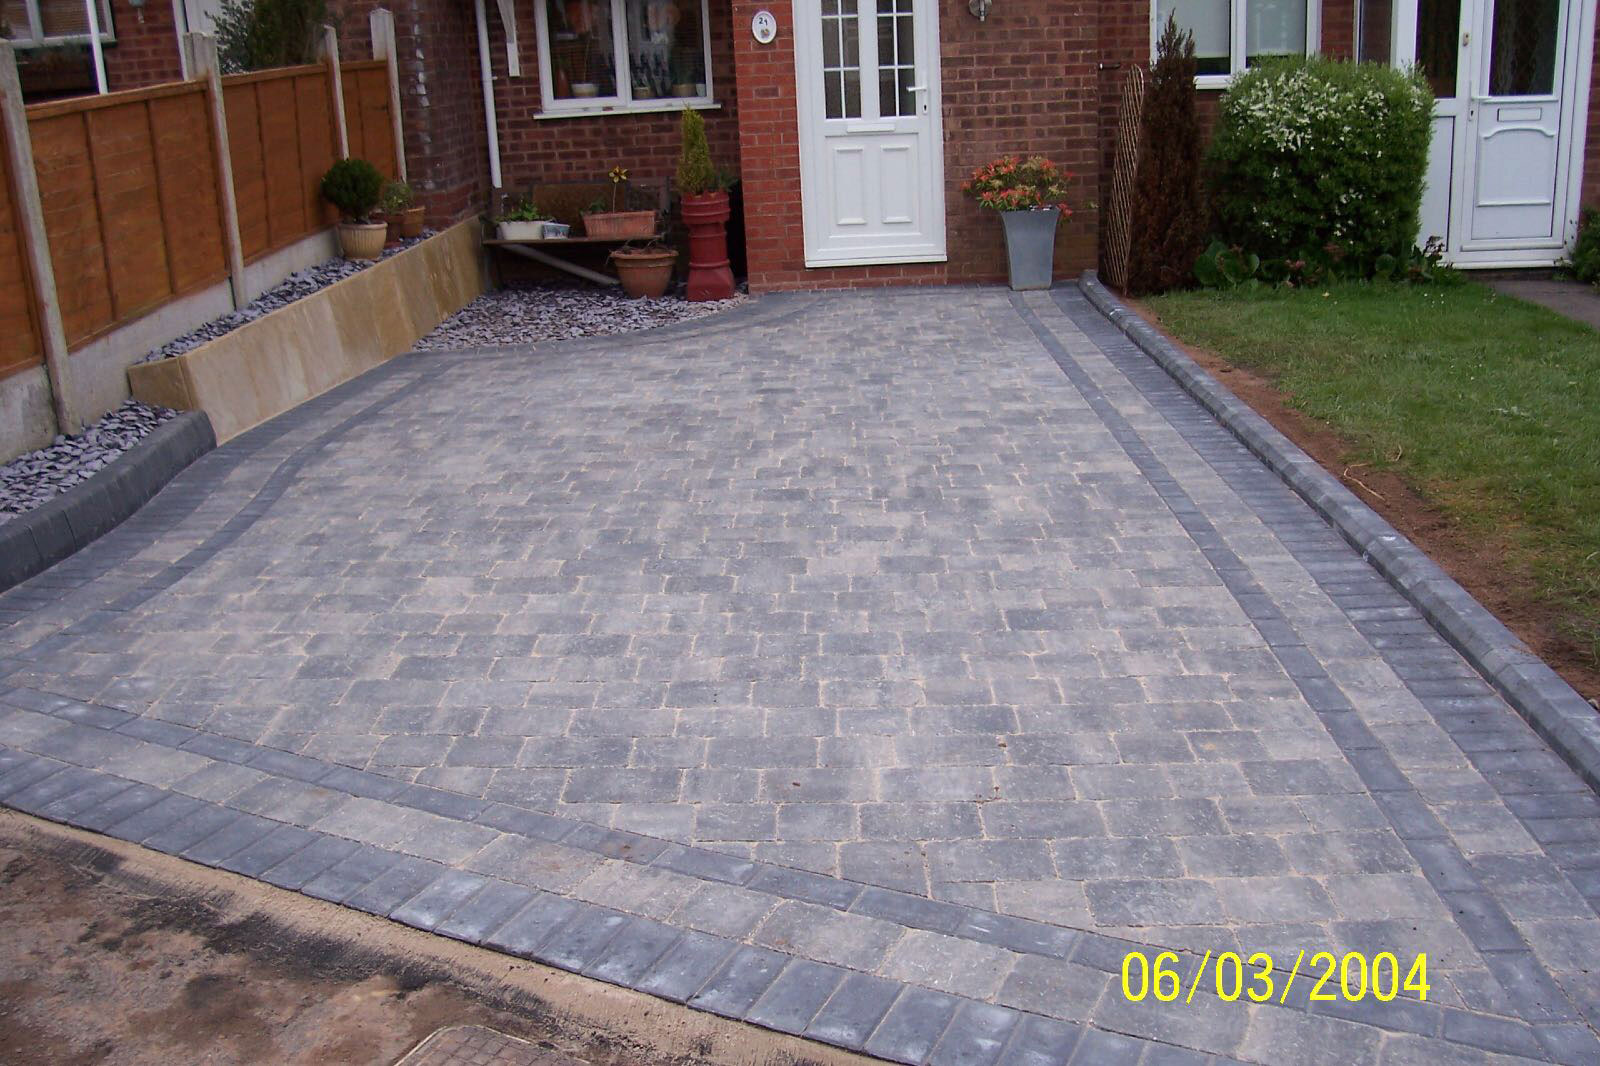 Red Granite Driveway : Driveways in west bromwich block paving